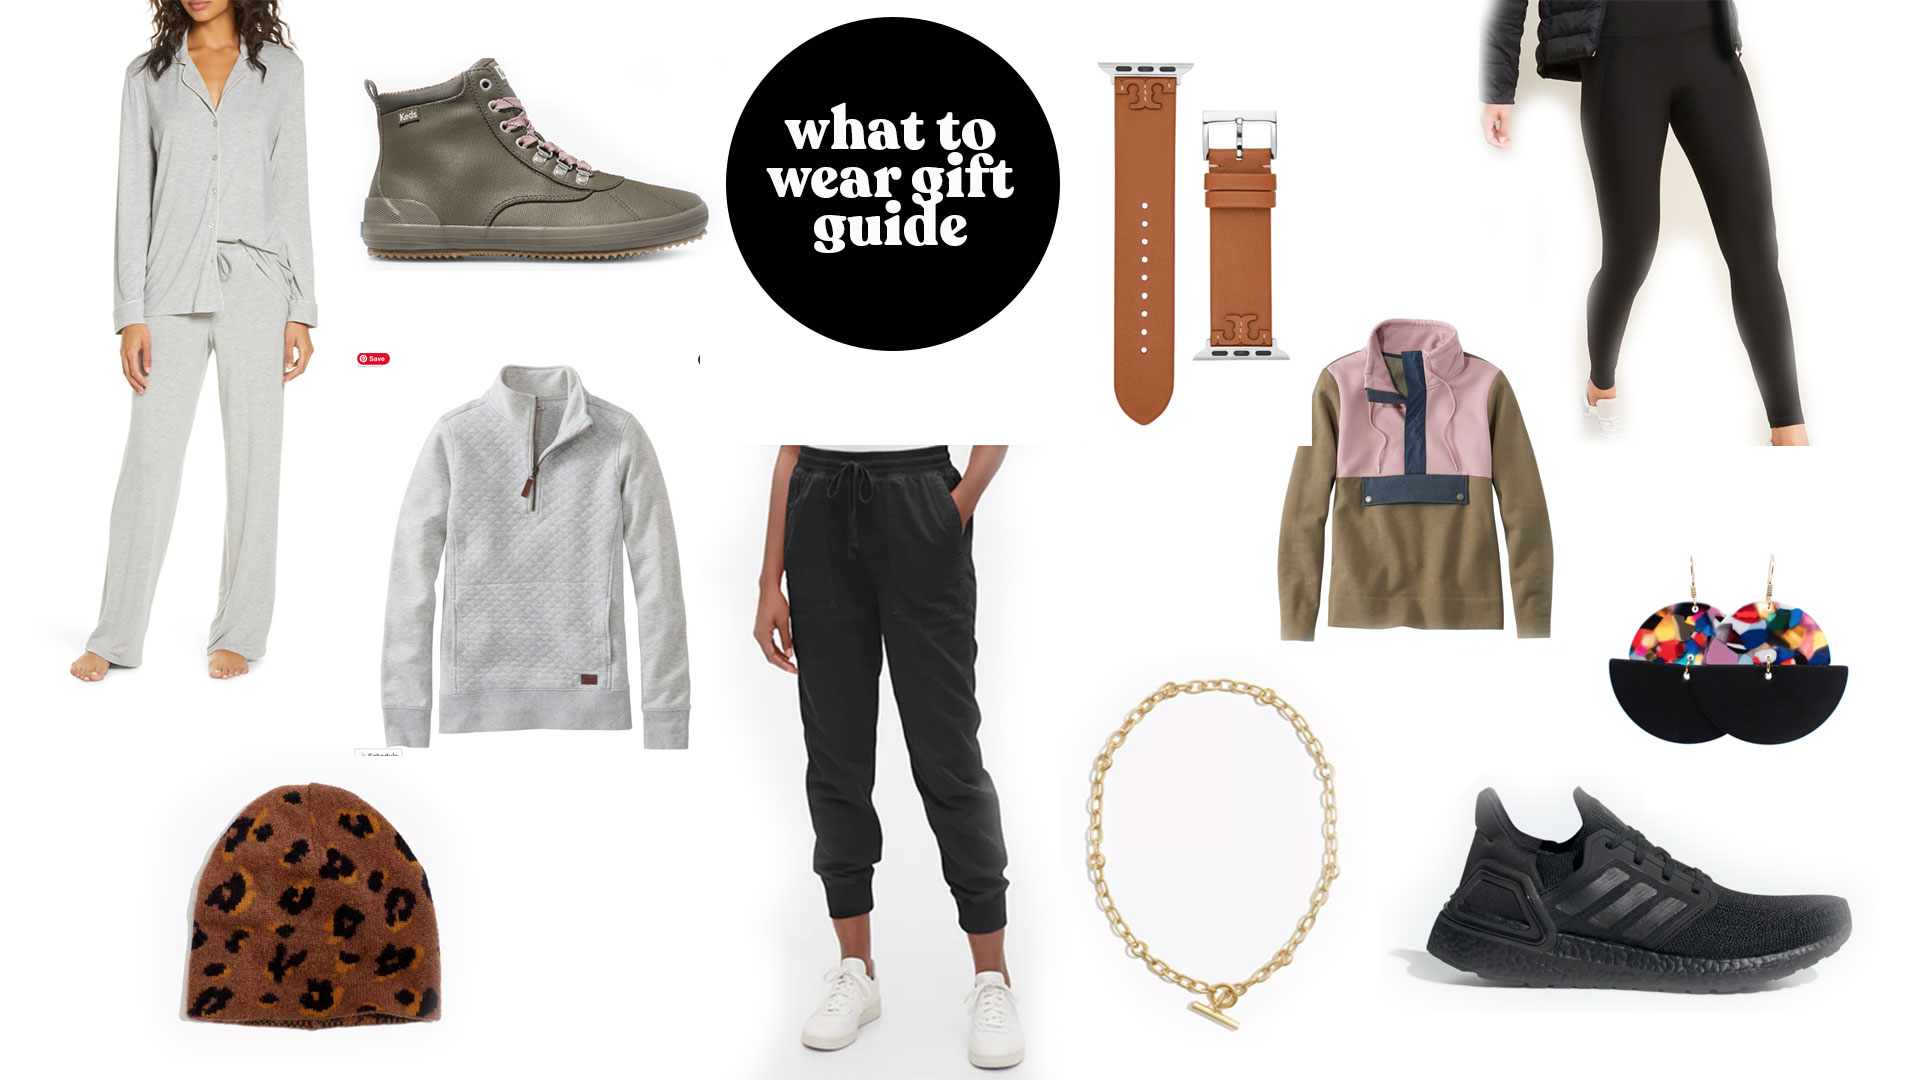 women's clothing and accessories gift guide